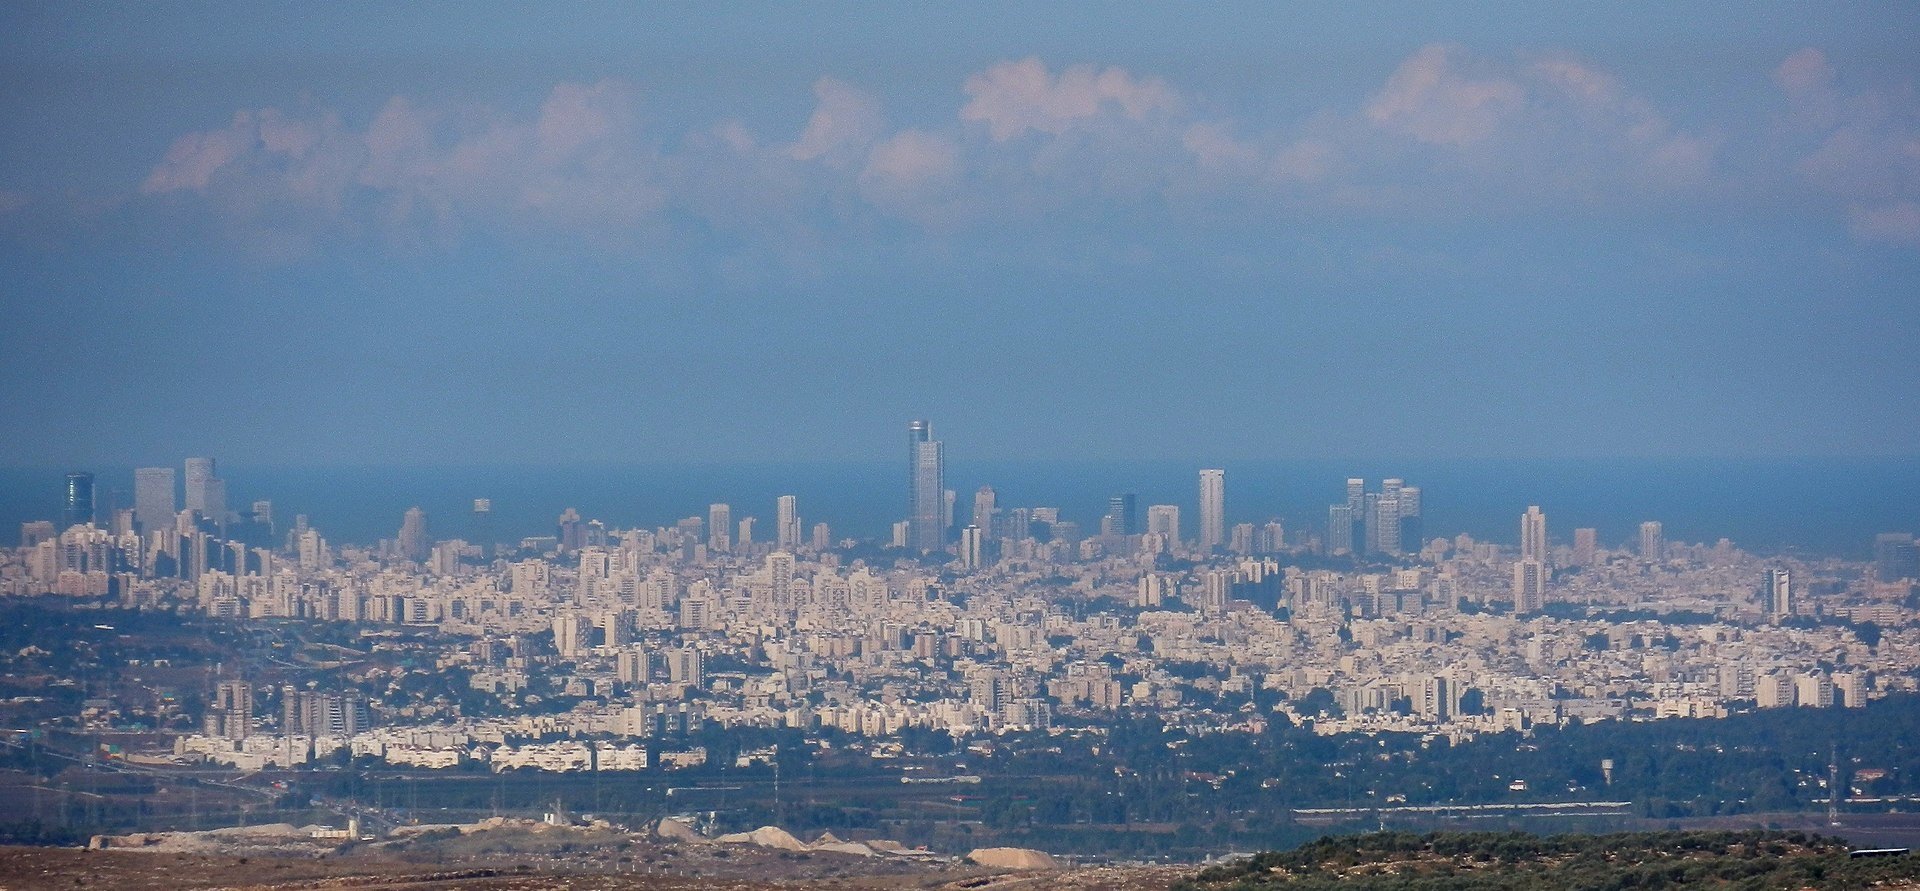 Clearly seeing Tel Aviv on a clear day from Paduel.